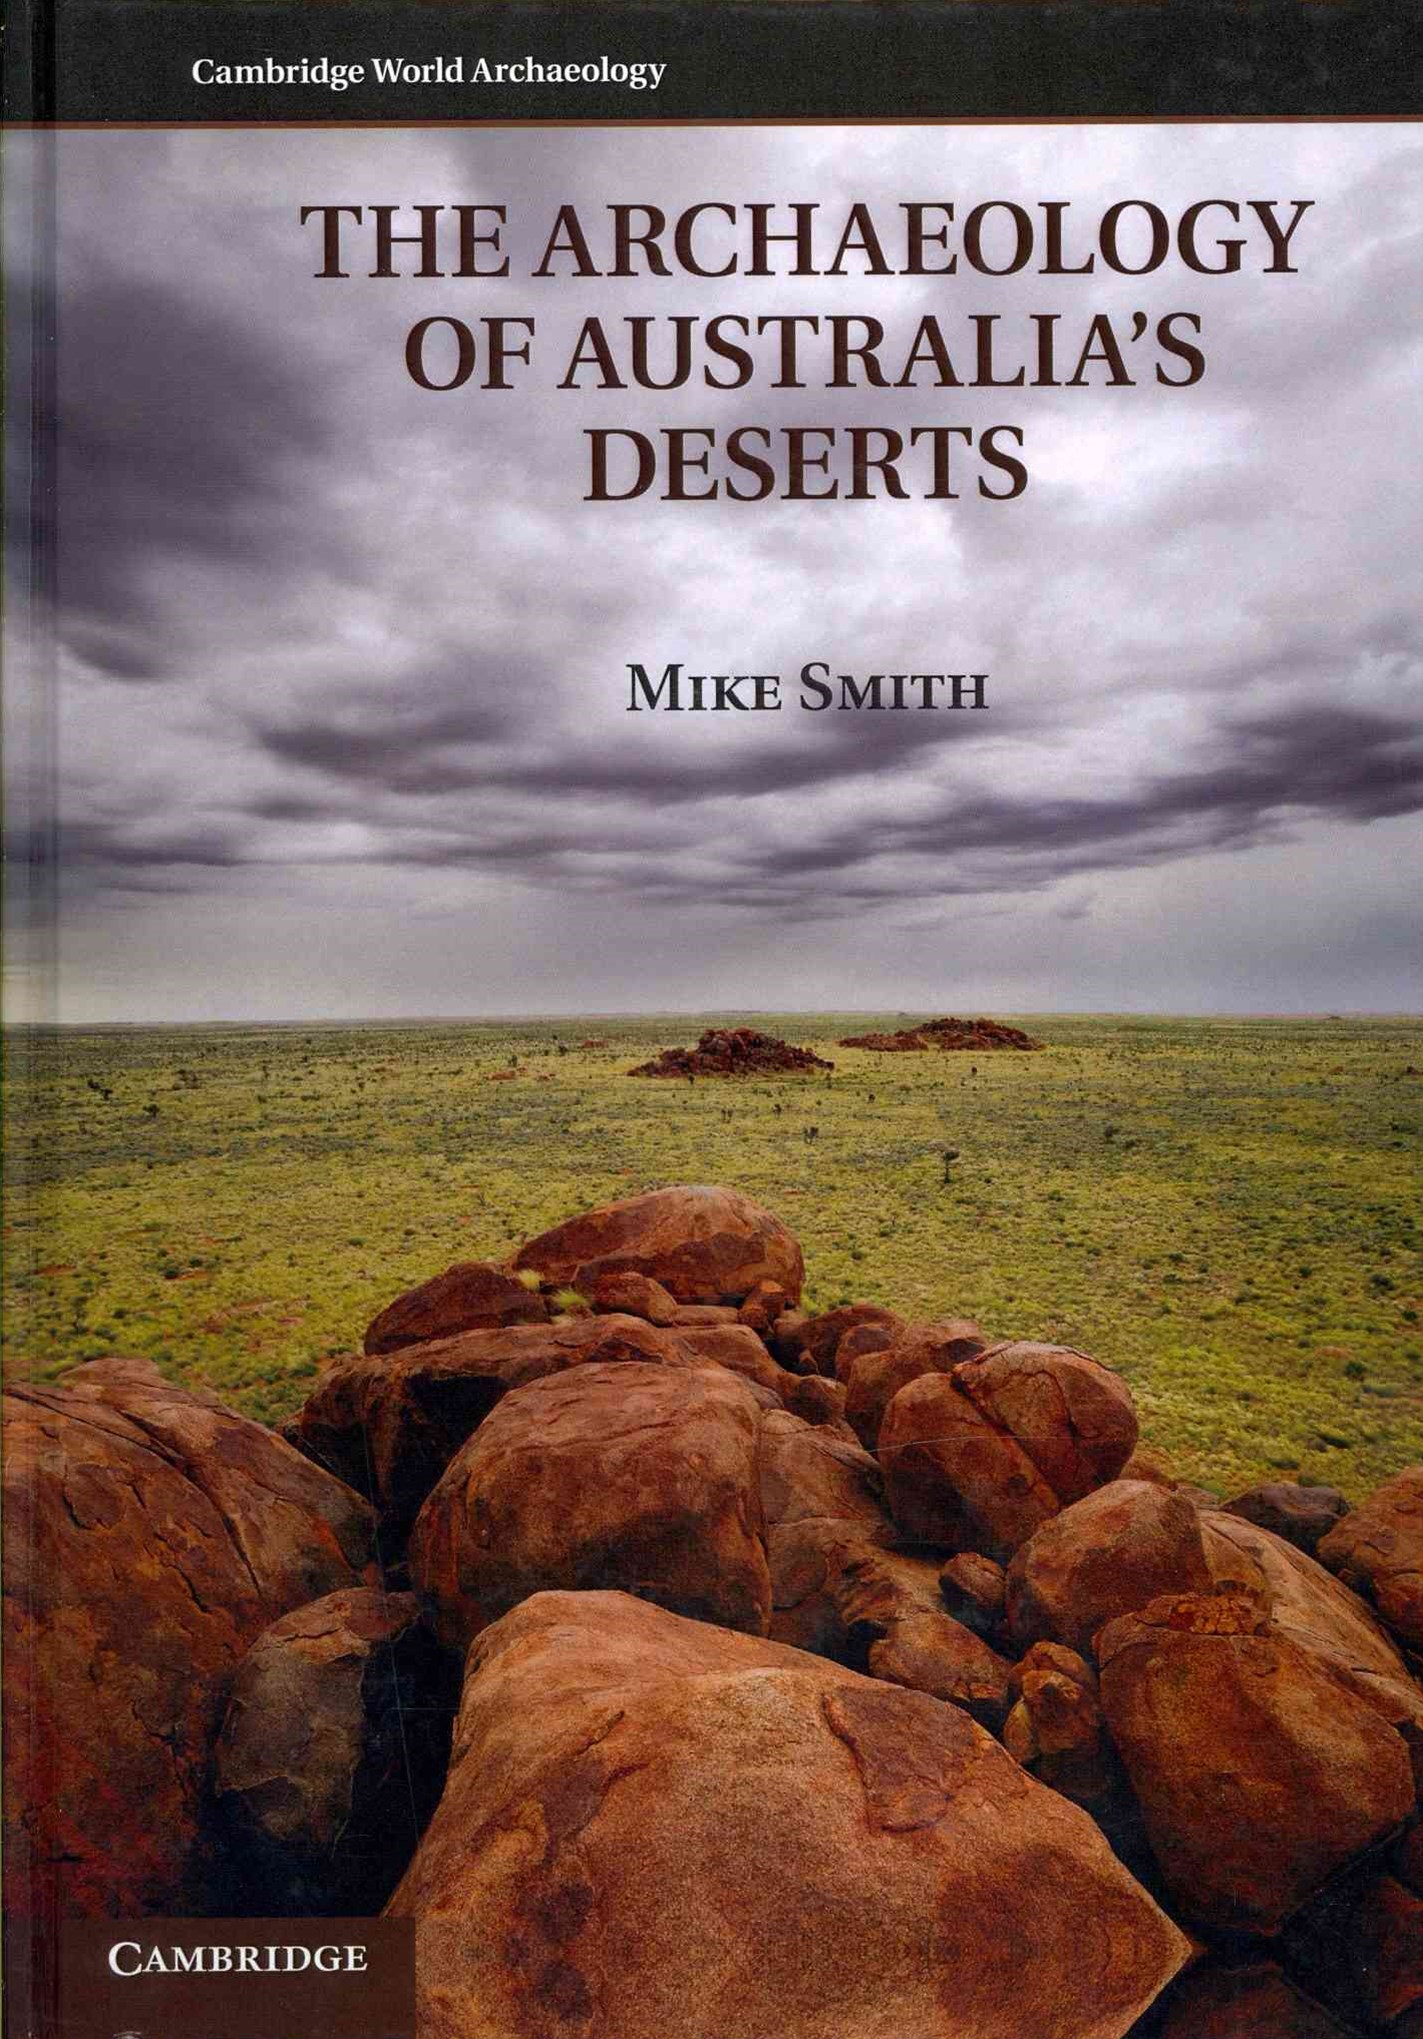 The Archaeology of Australia's Deserts